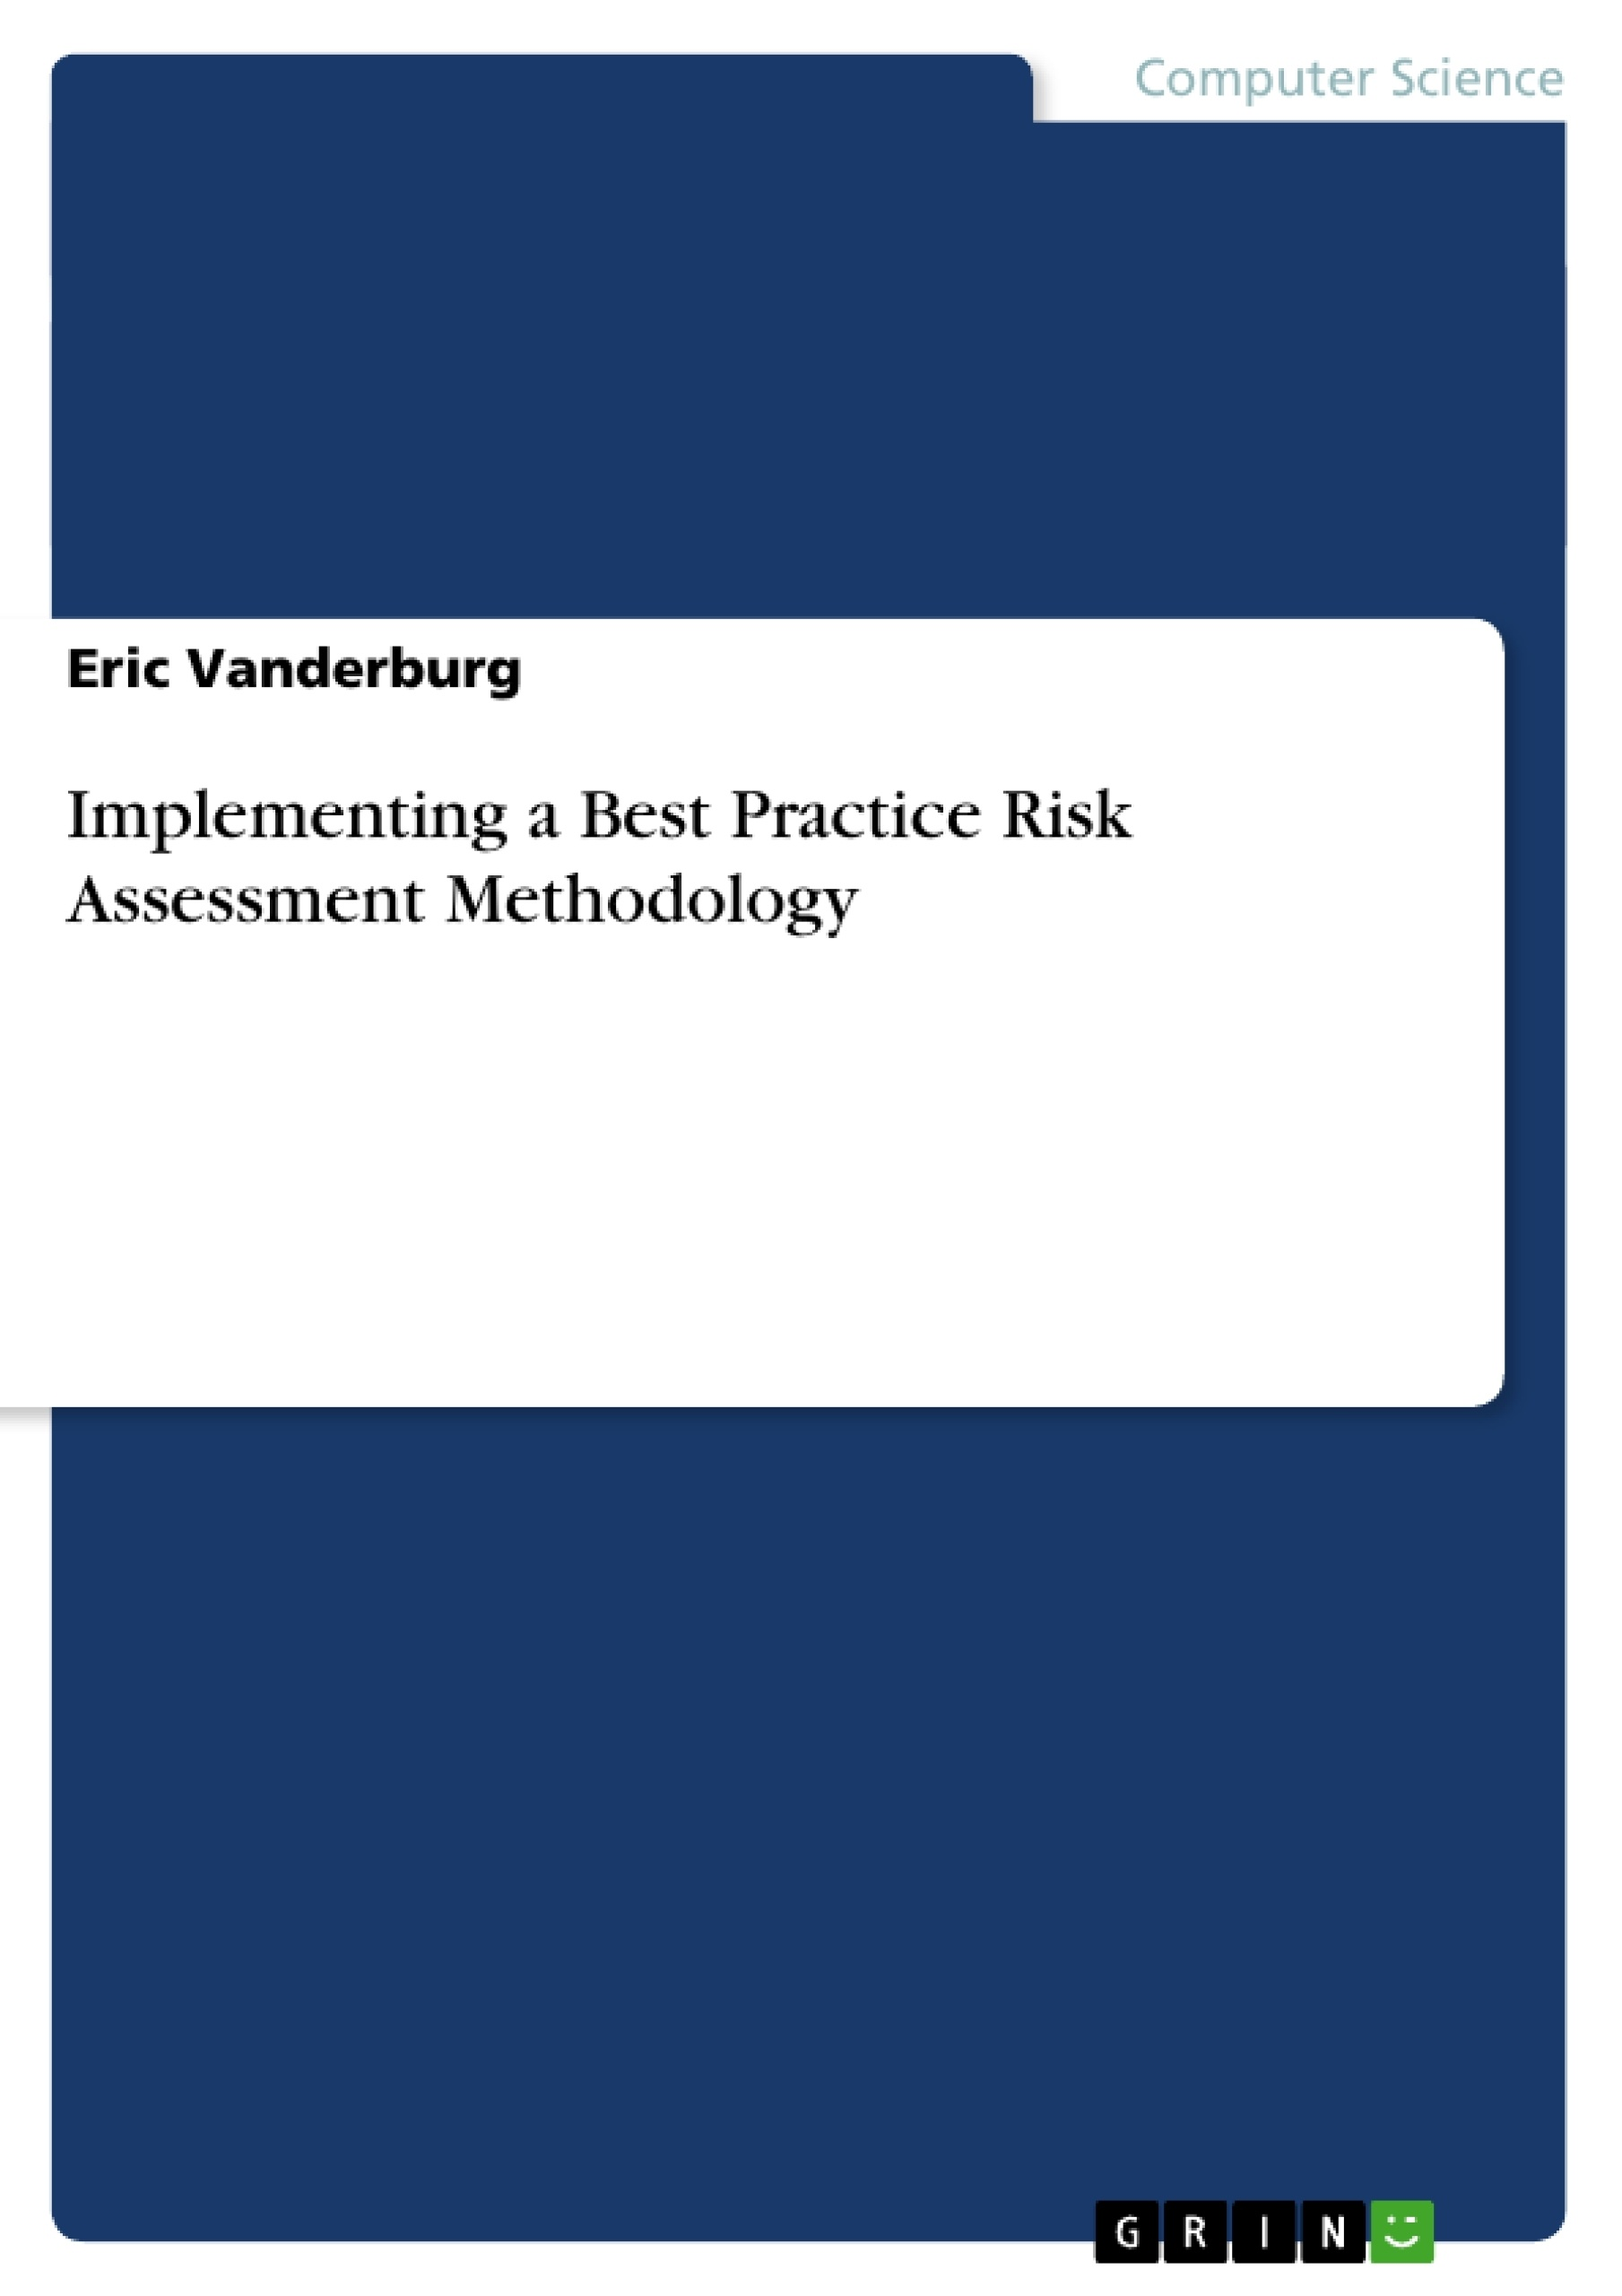 Title: Implementing a Best Practice Risk Assessment Methodology